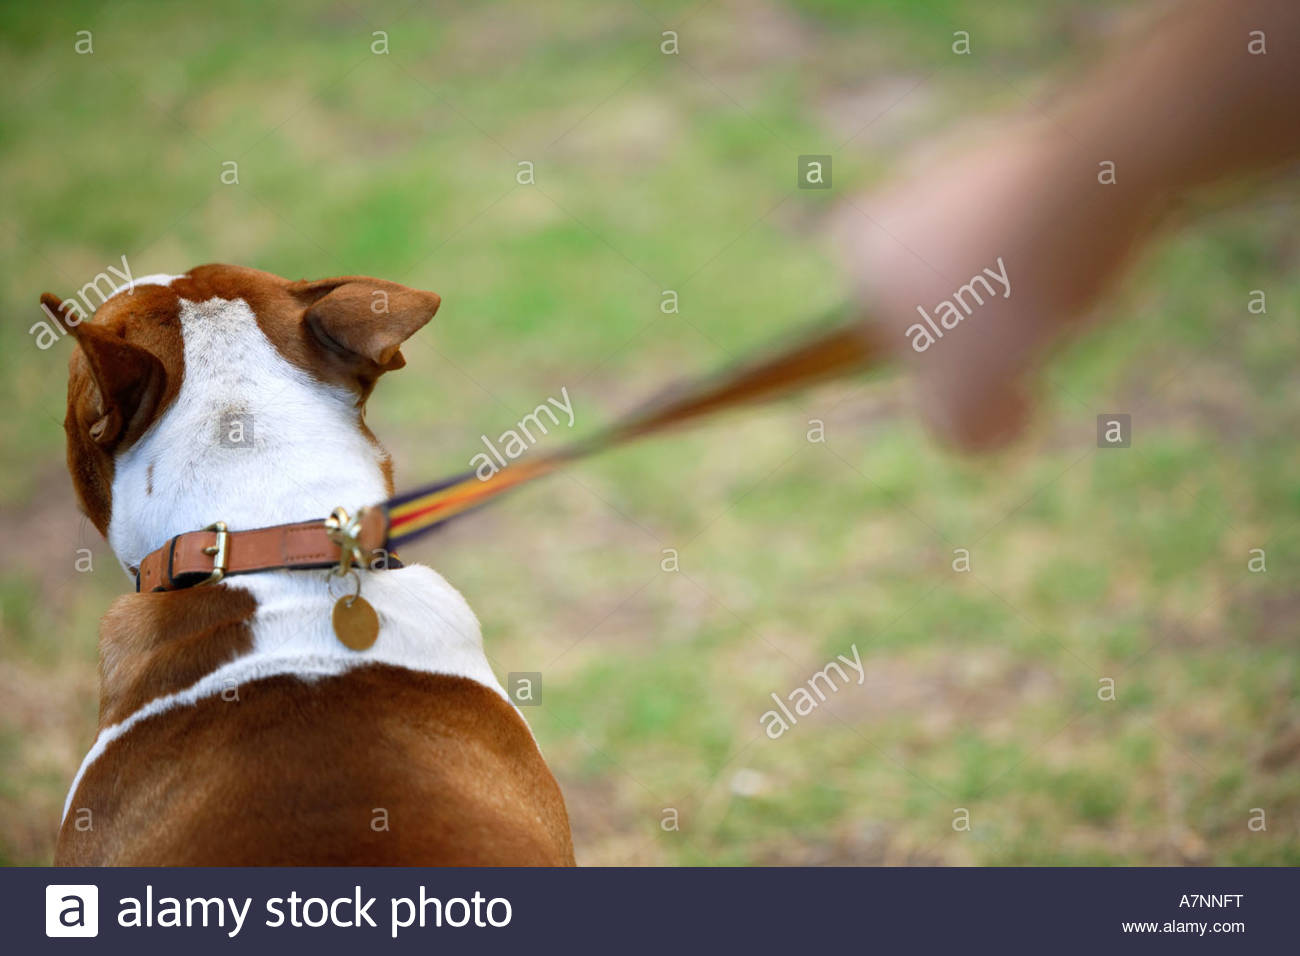 Man walking dog on grass rear view close up differential focus - Stock Image